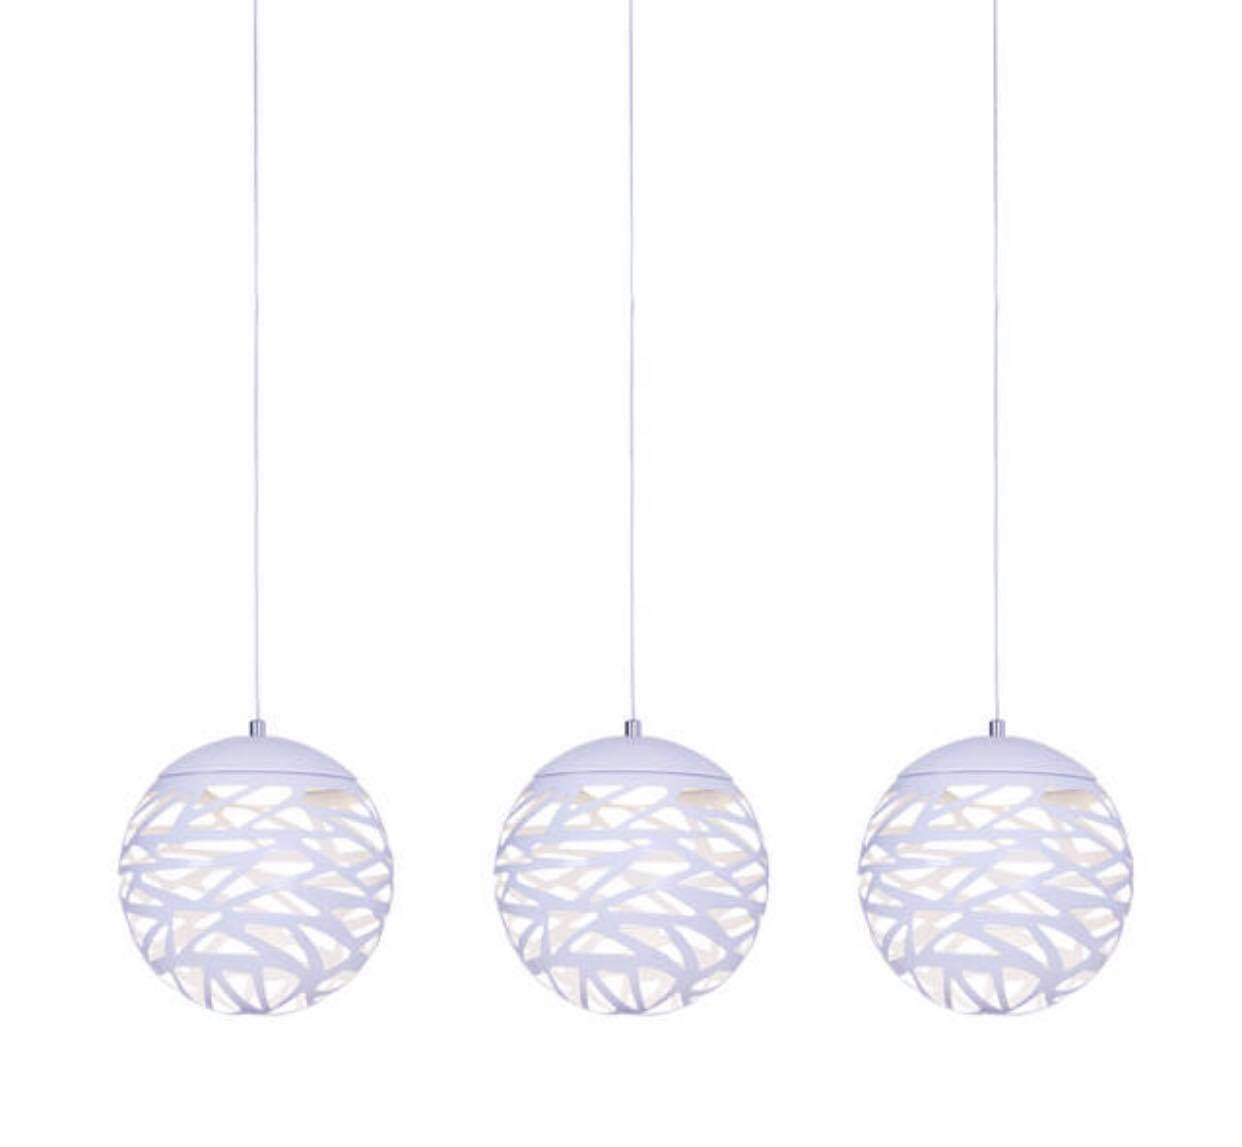 Spherical LED pendant